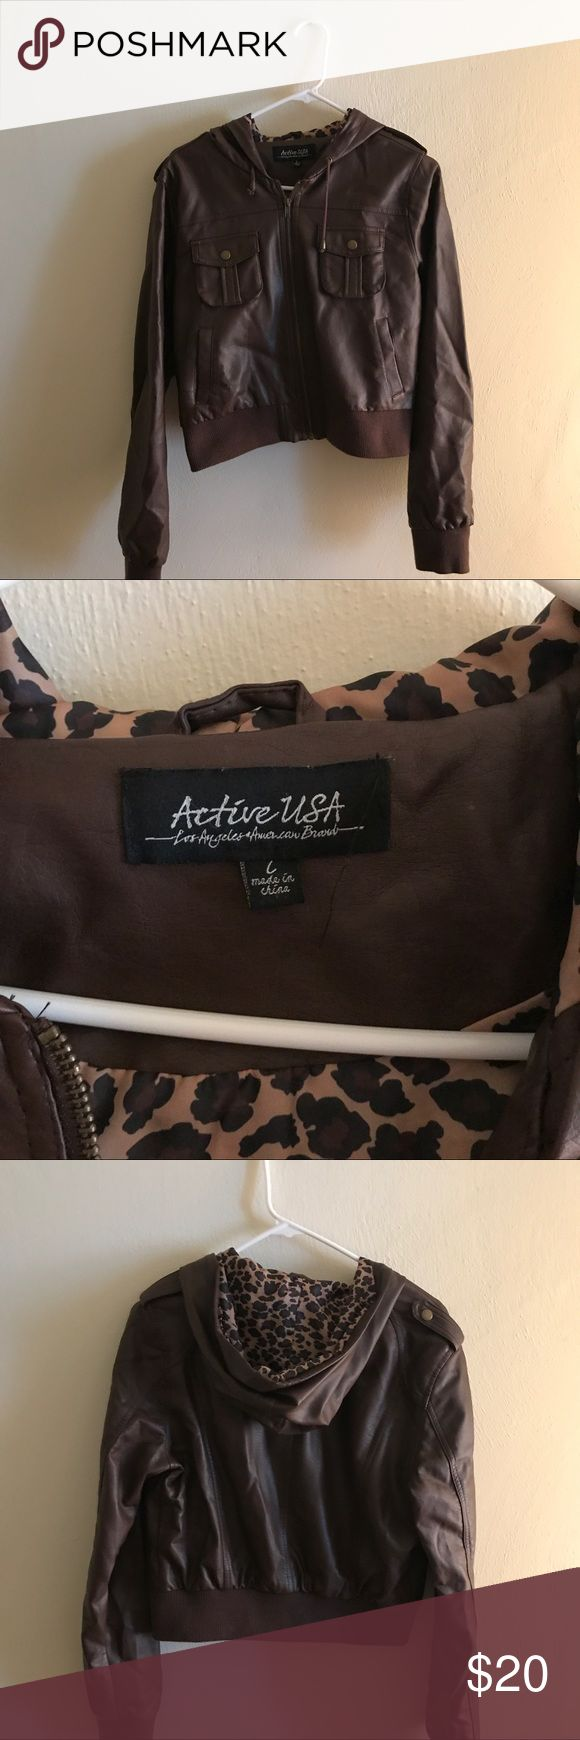 Women's brown faux leather crop jacket Brown faux leather jacket. Size large but runs a little small. Leopard print on the inside. Great condition Active USA Jackets & Coats